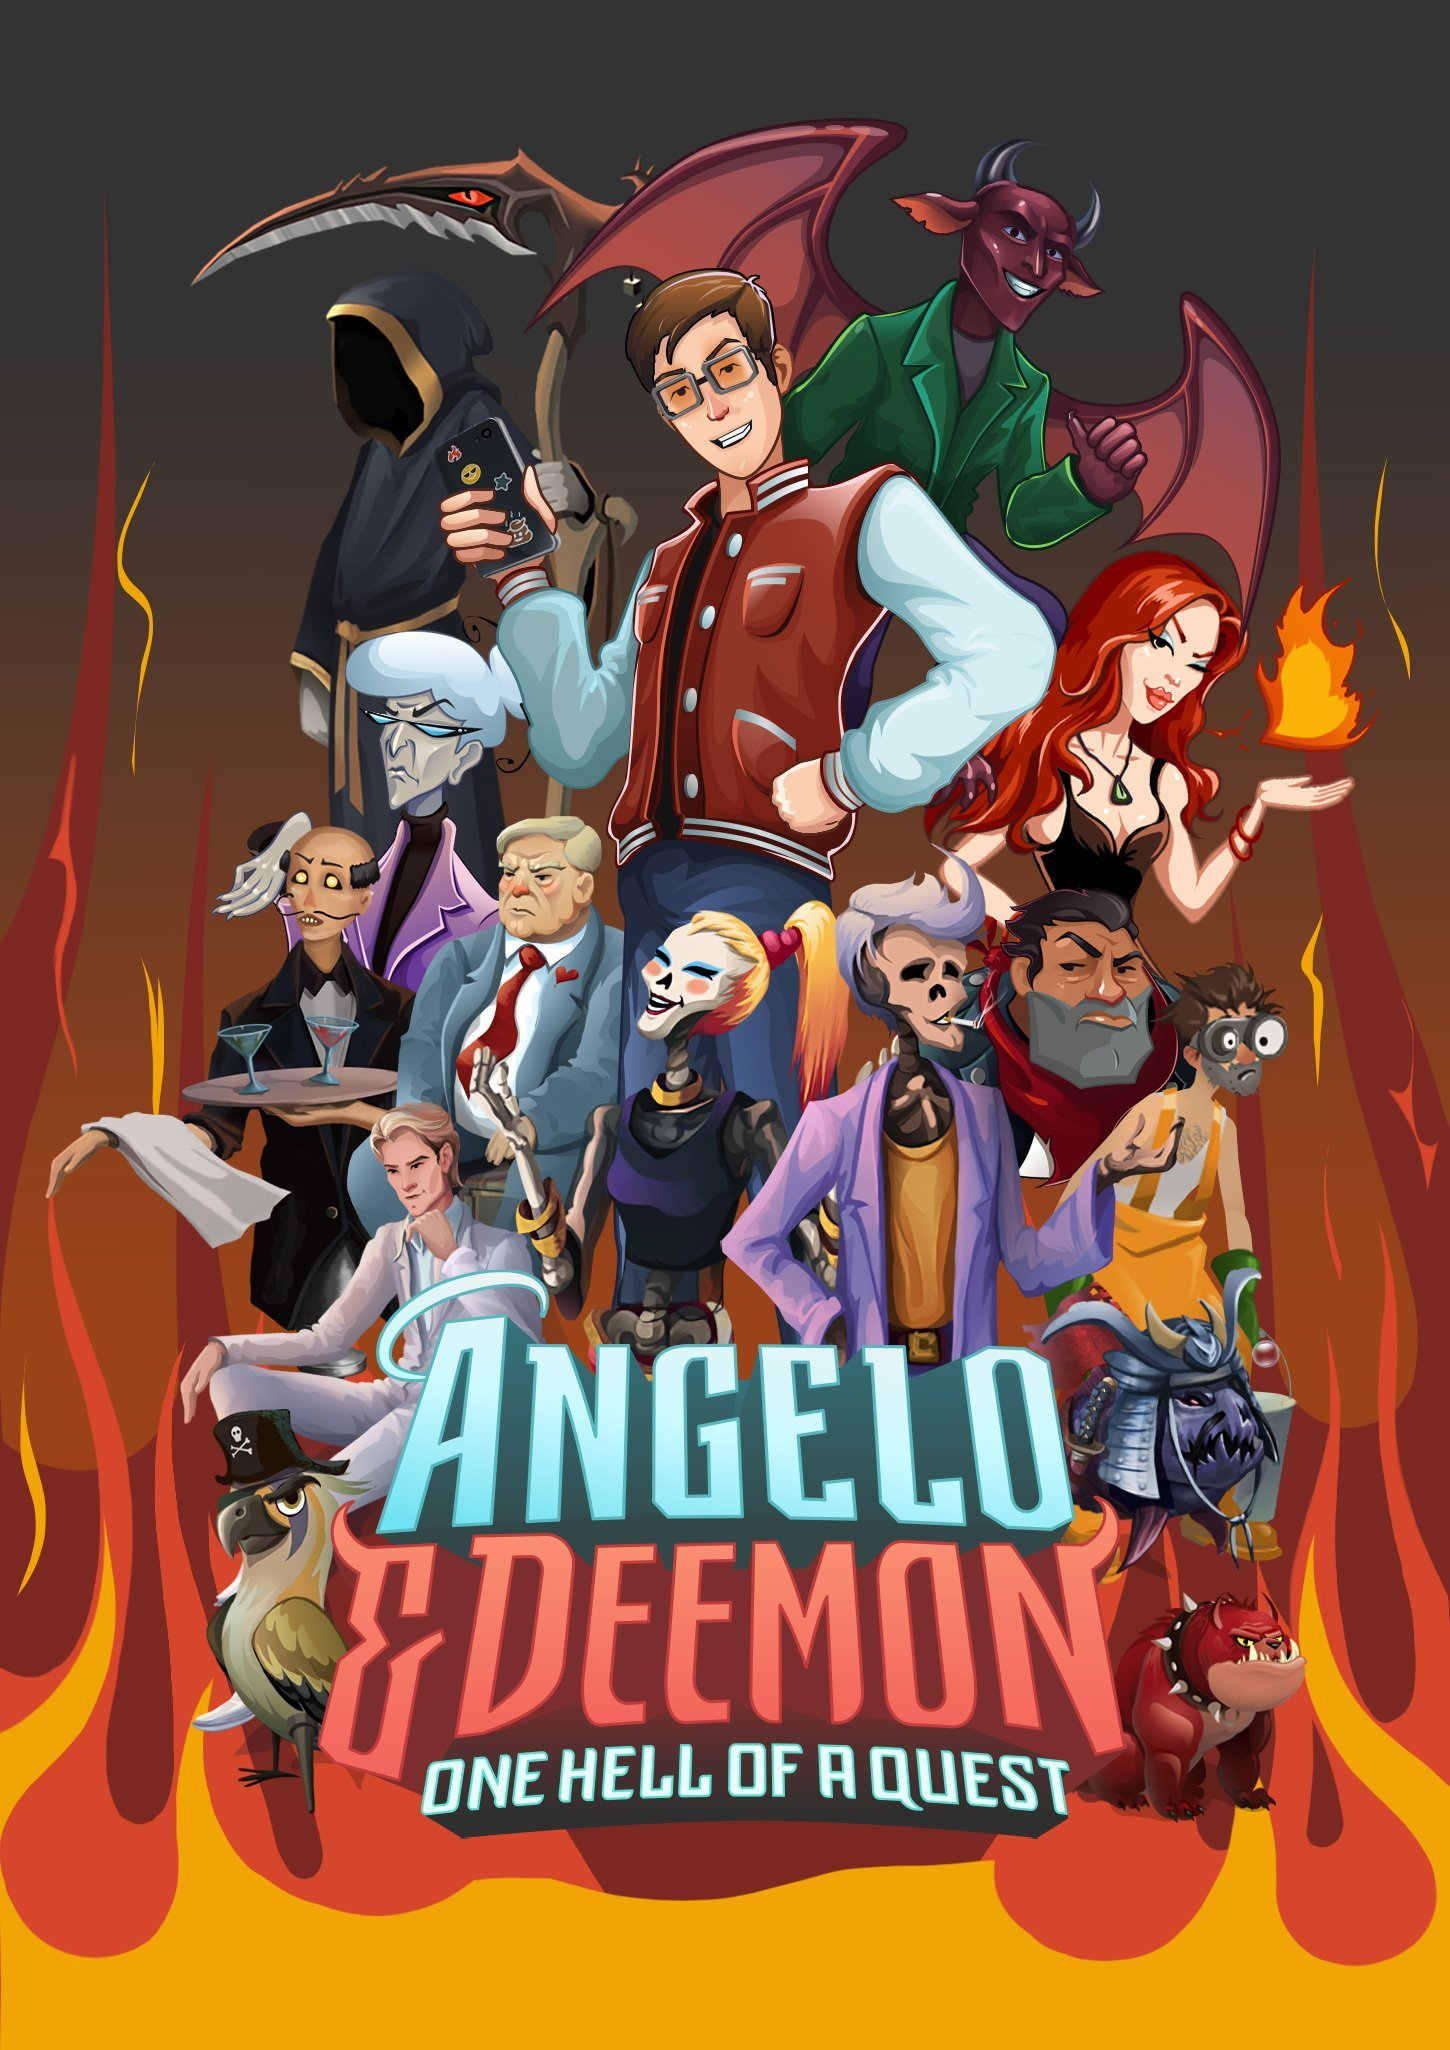 Angelo and Deemon: One Hell of a Quest (Build 4260198) [Portable] (2019) скачать торрент Лицензия